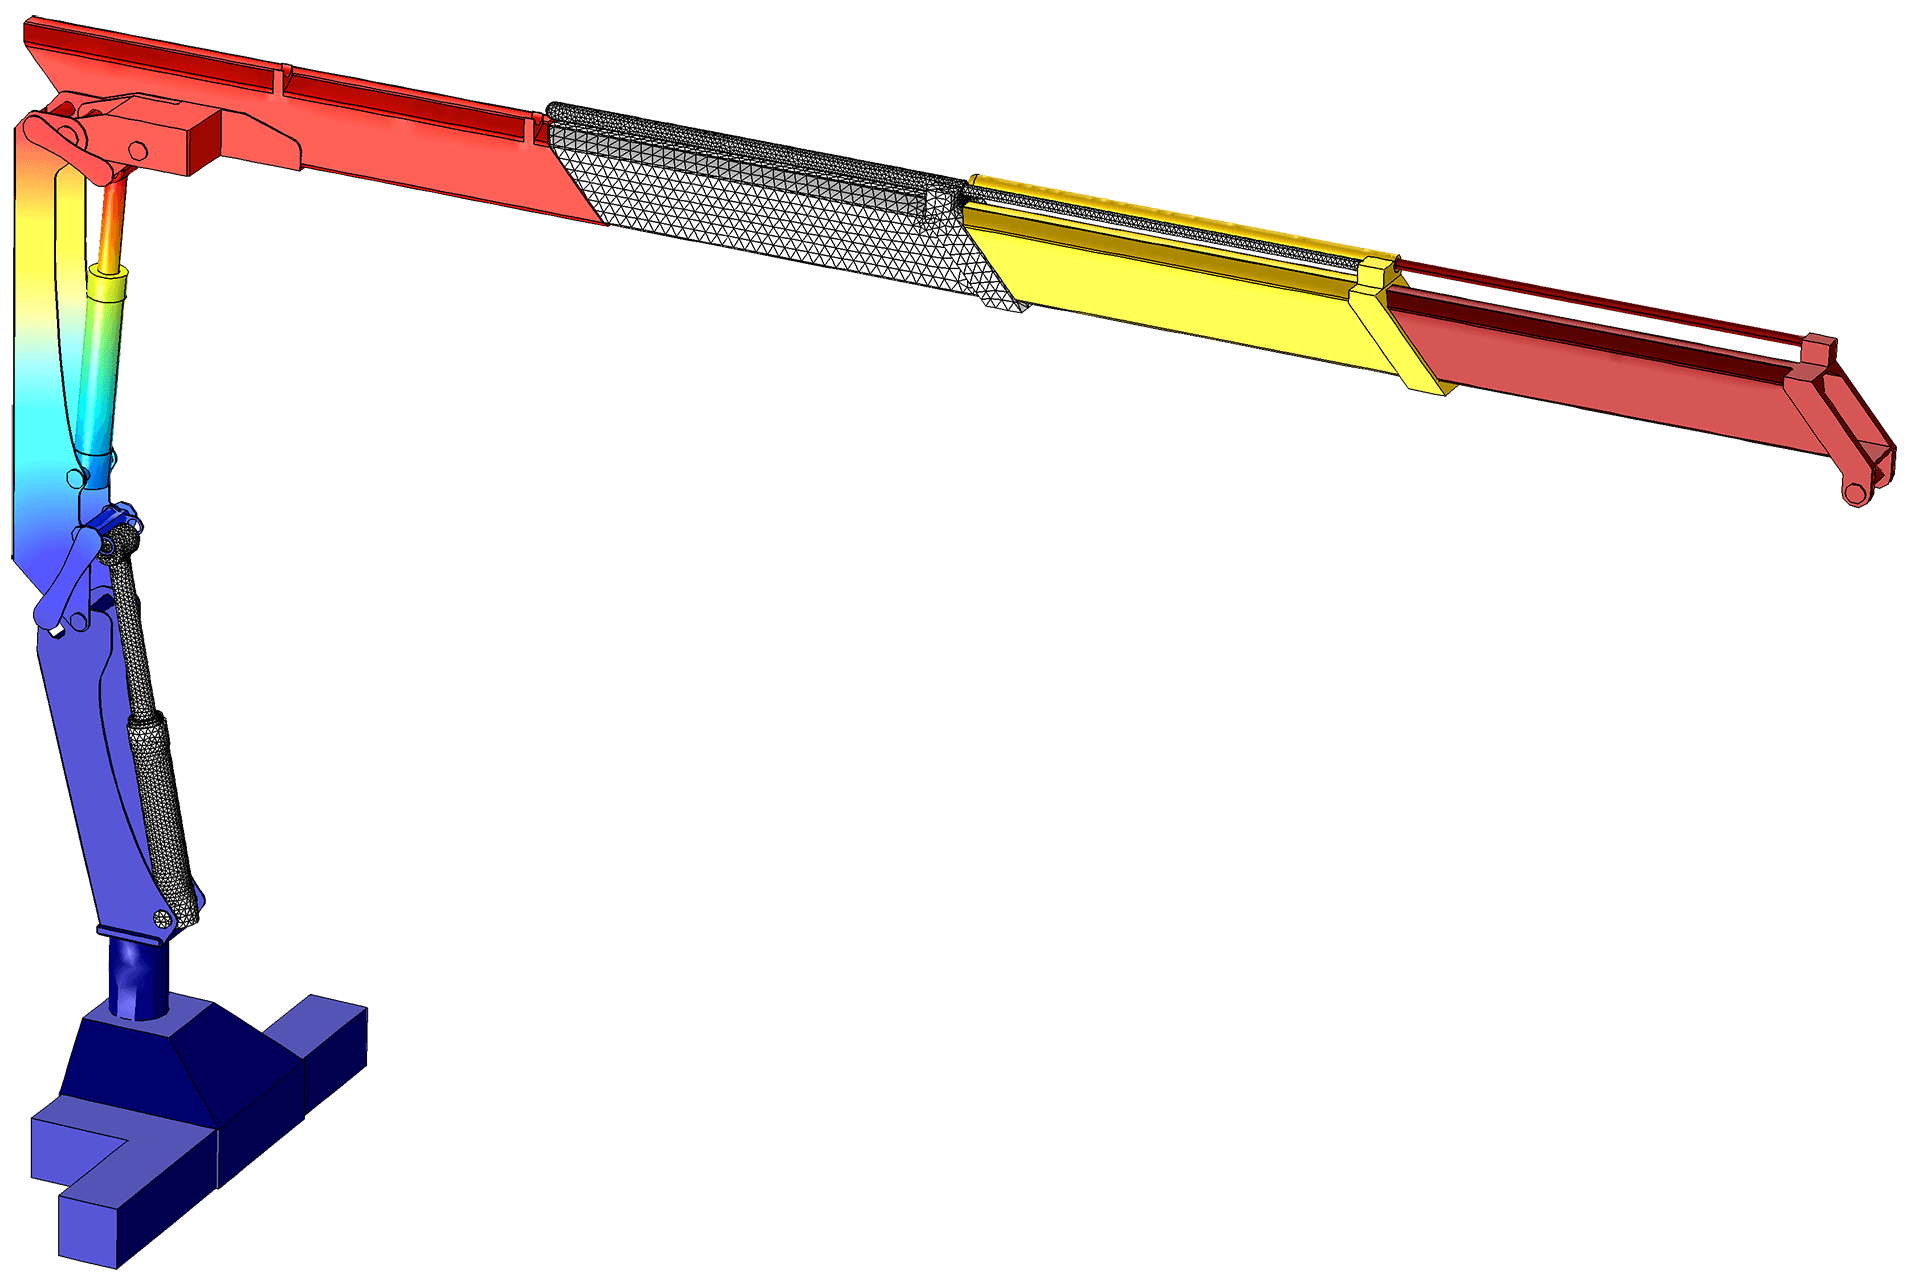 Model of a truck crane used for handling large loads. The simulation analyzes rigid body movement and predicts forces on the crane's axles and hydraulic cylinders. Results are used to optimize the position of link mechanisms in the base.